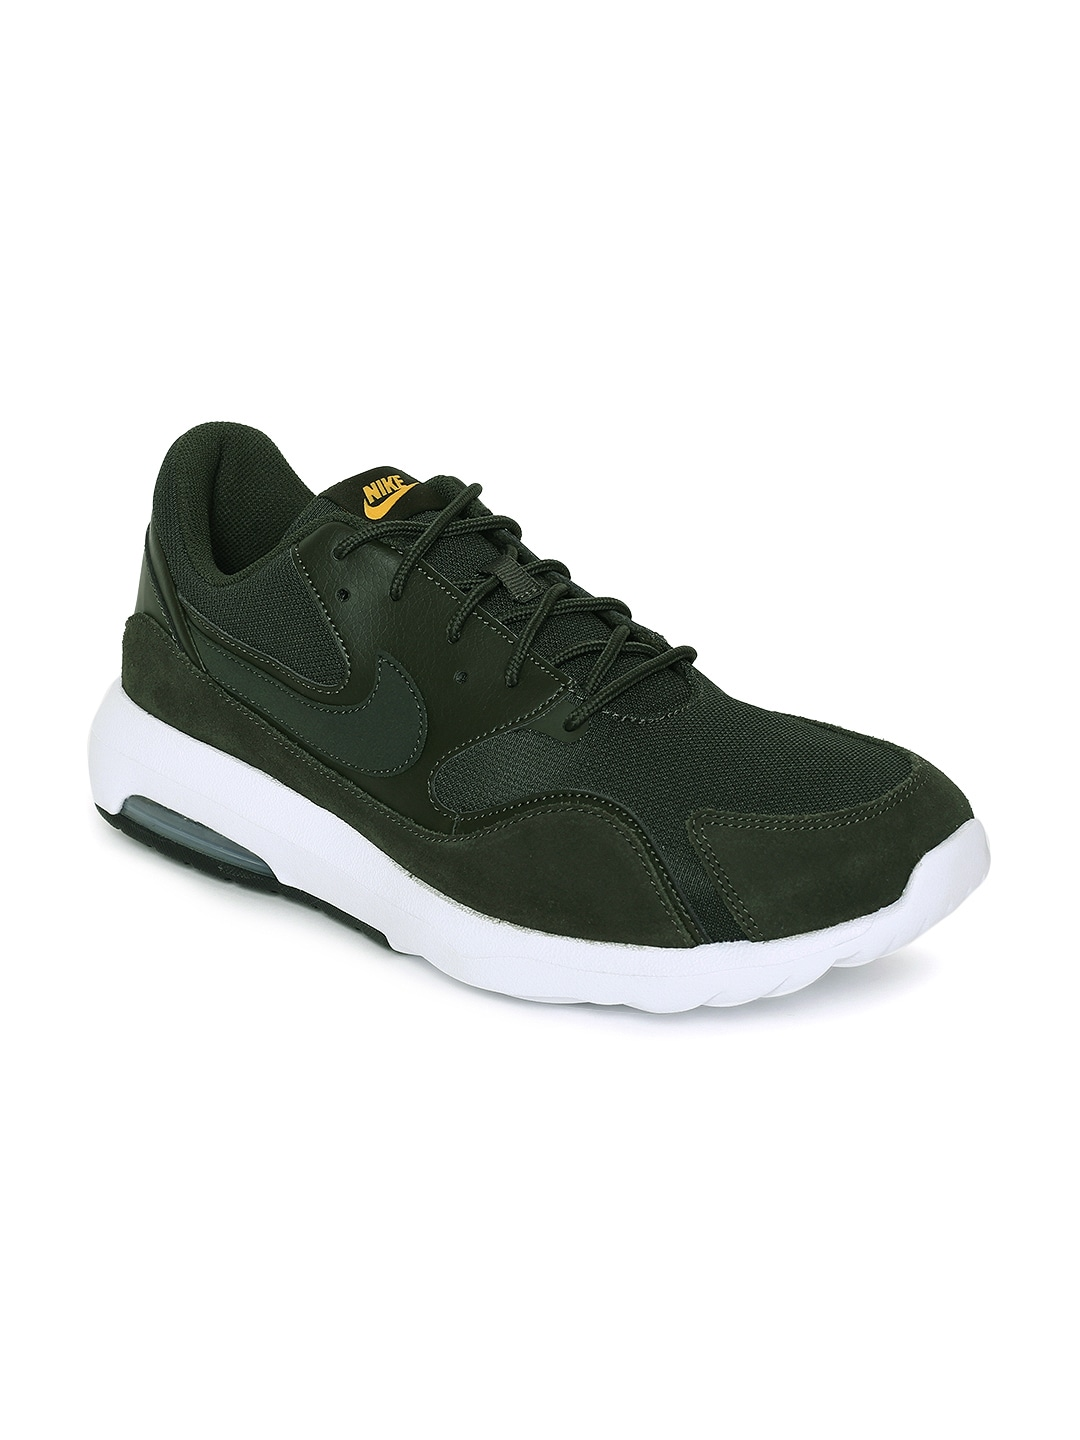 9939767c4800df Nike - Shop for Nike Apparels Online in India